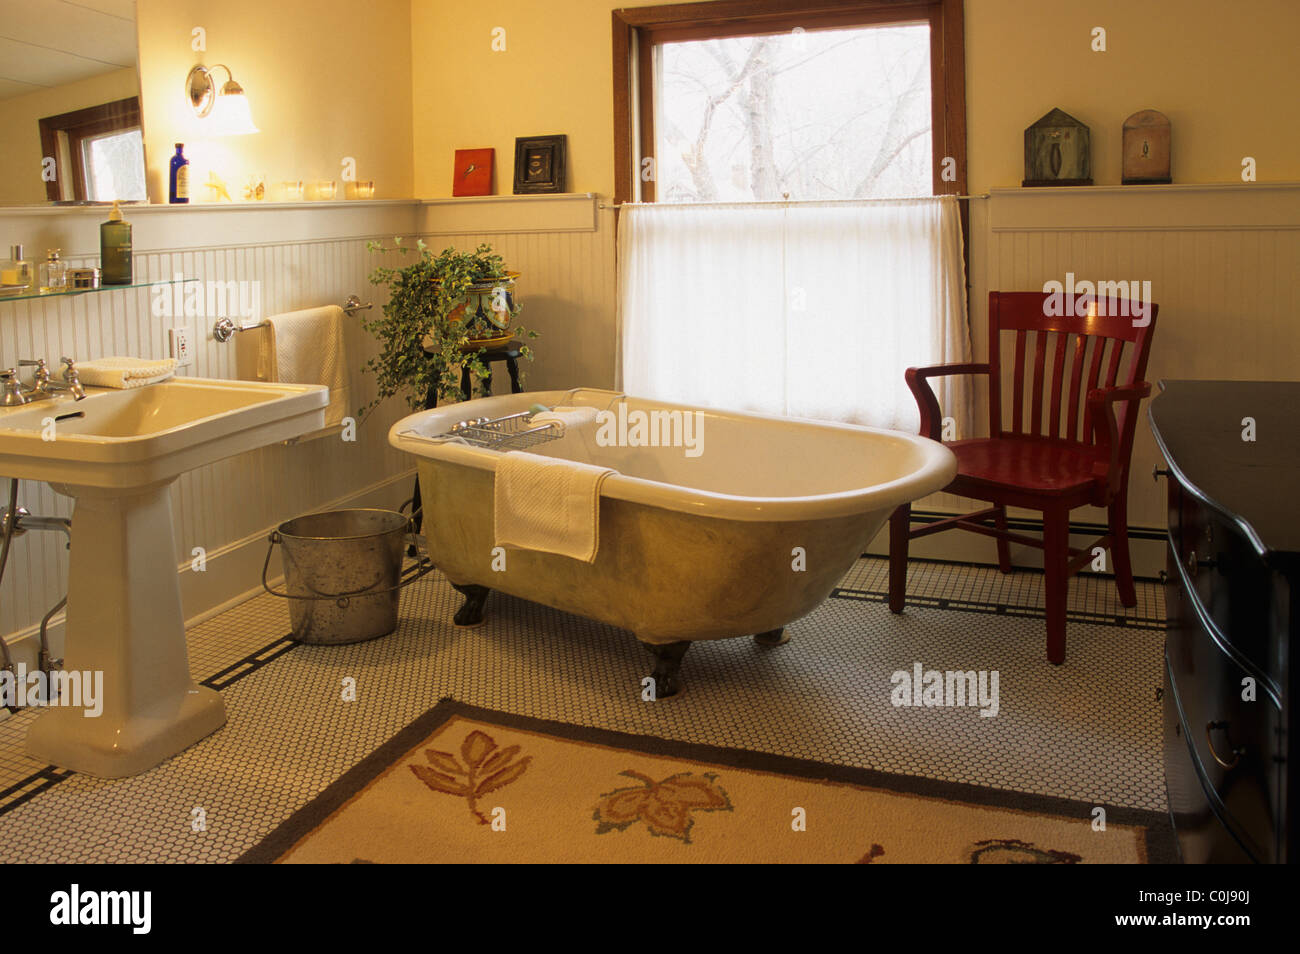 OLDFASHIONED CASTIRON CLAWFOOT BATHTUB AND PEDESTAL SINK IN